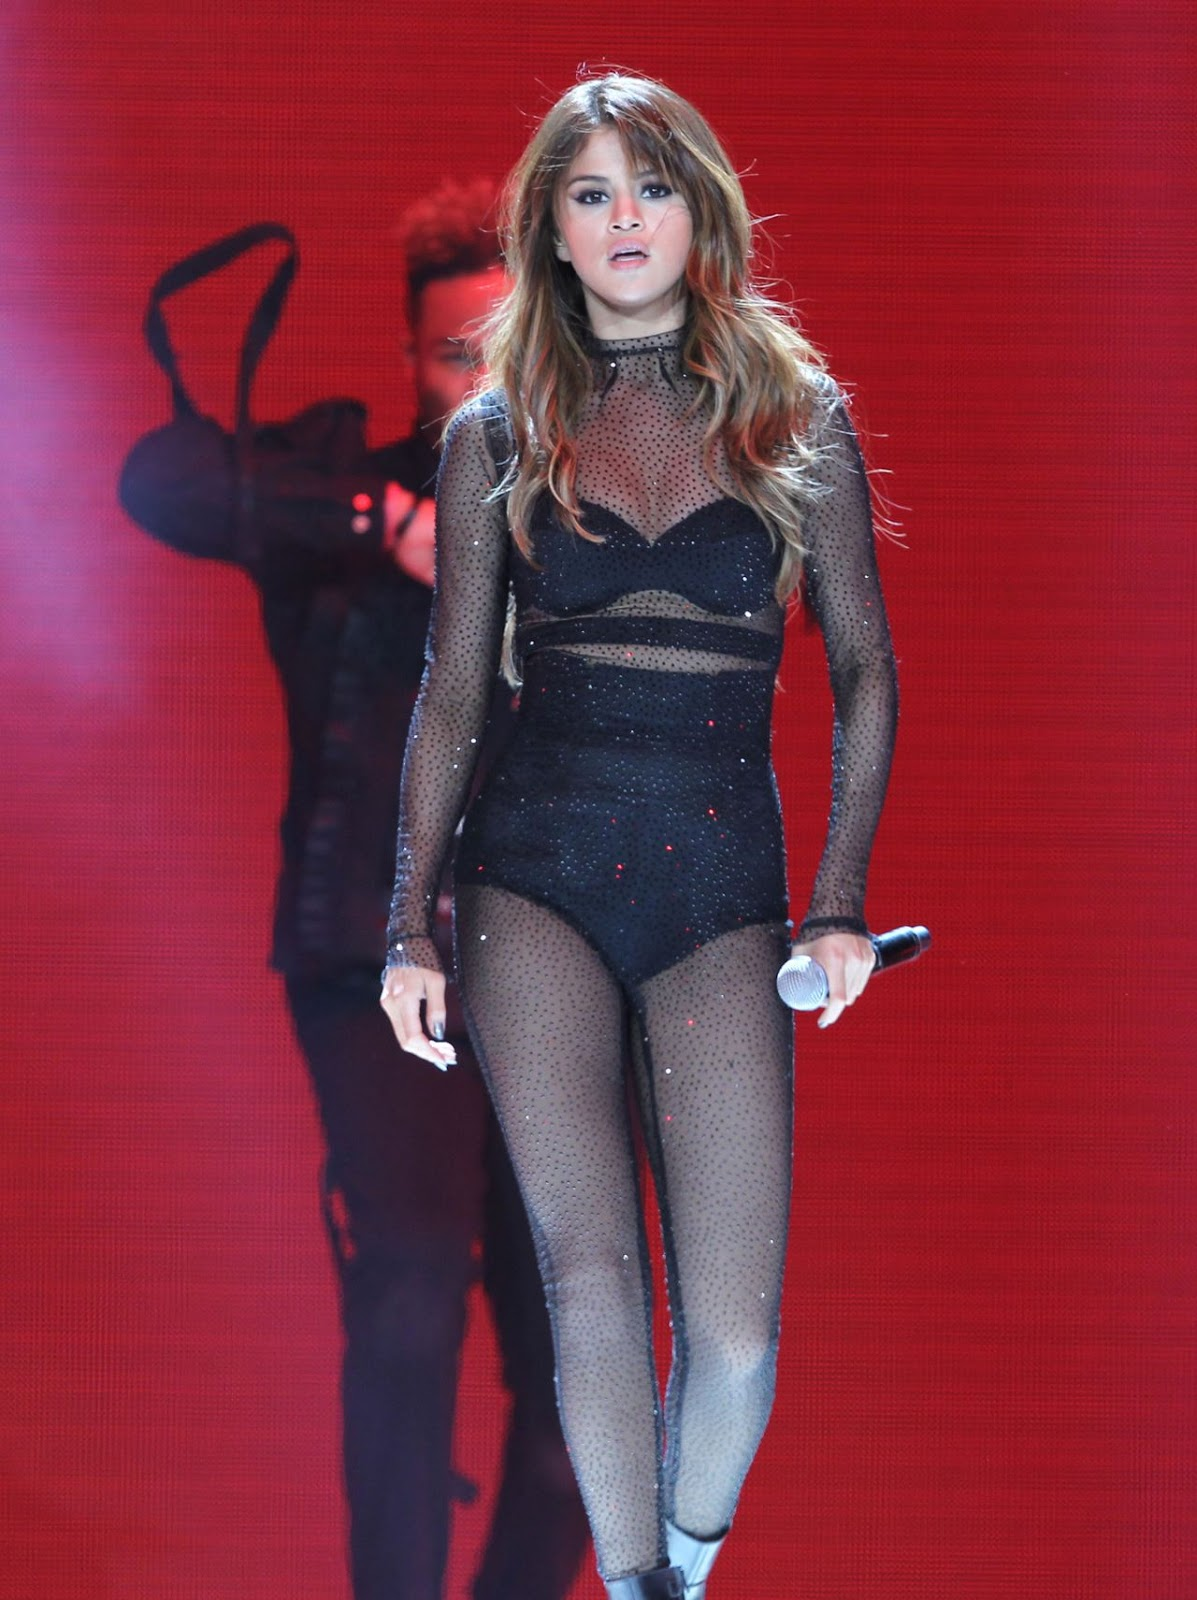 Selena Gomez Gets Sexy For Revival Tour Concert In LA